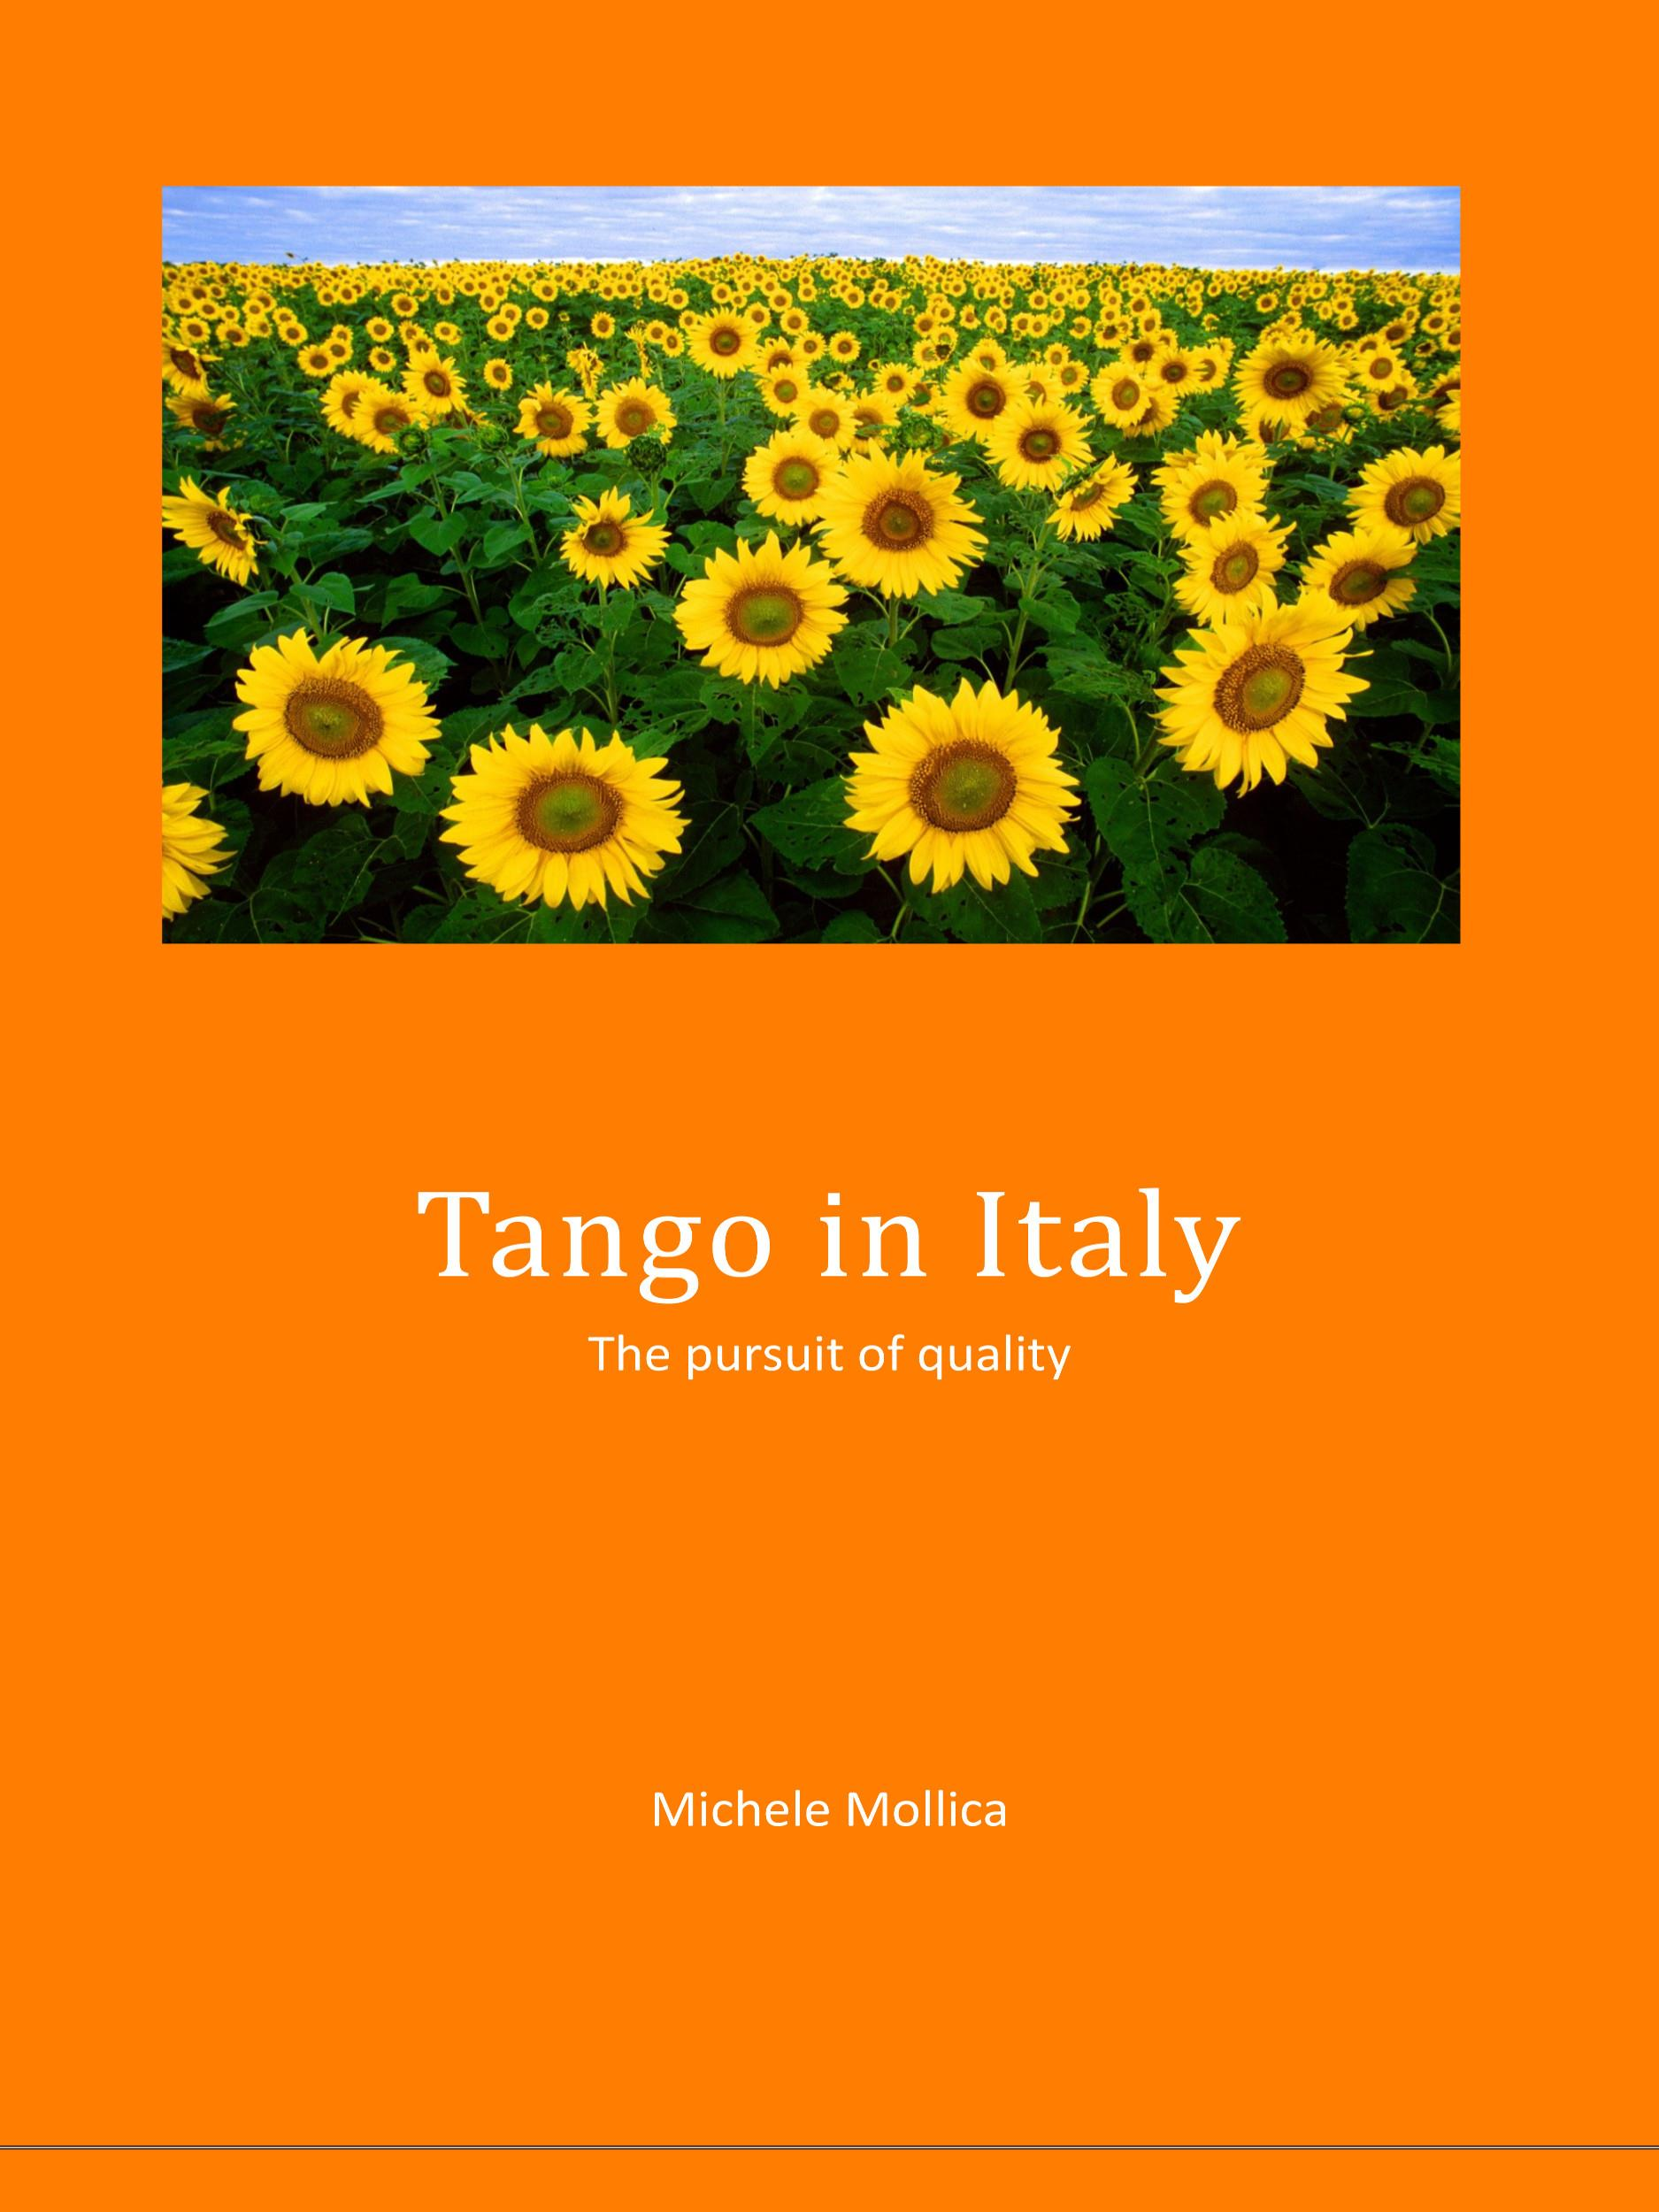 Tango in Italy - The pursuit of quality